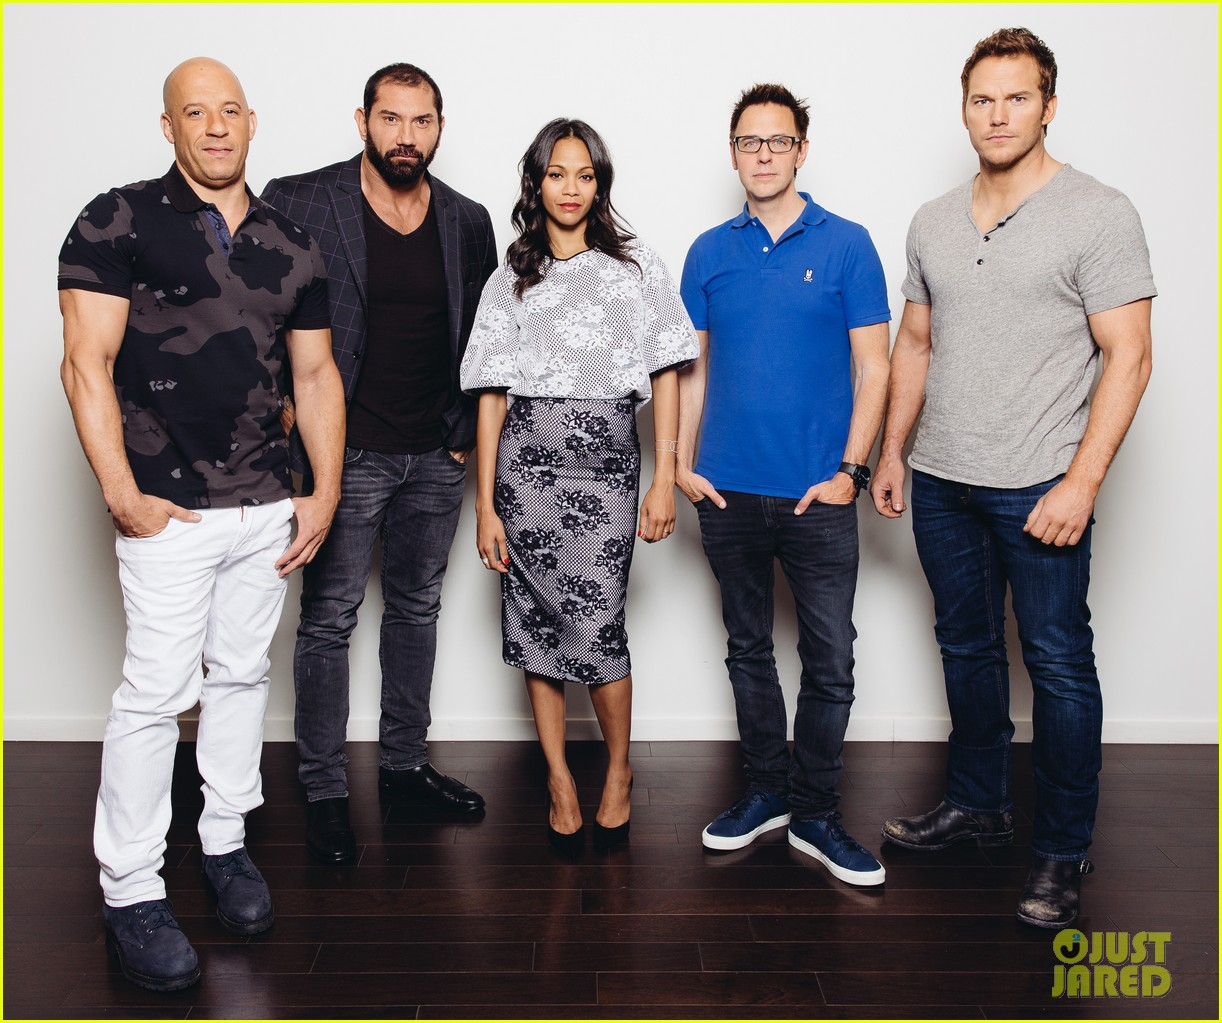 http://cdn01.cdn.justjared.com/wp-content/uploads/2014/07/saldana-ham/zoe-saldana-chris-pratt-guardians-of-the-galaxy-press-day-02.jpg